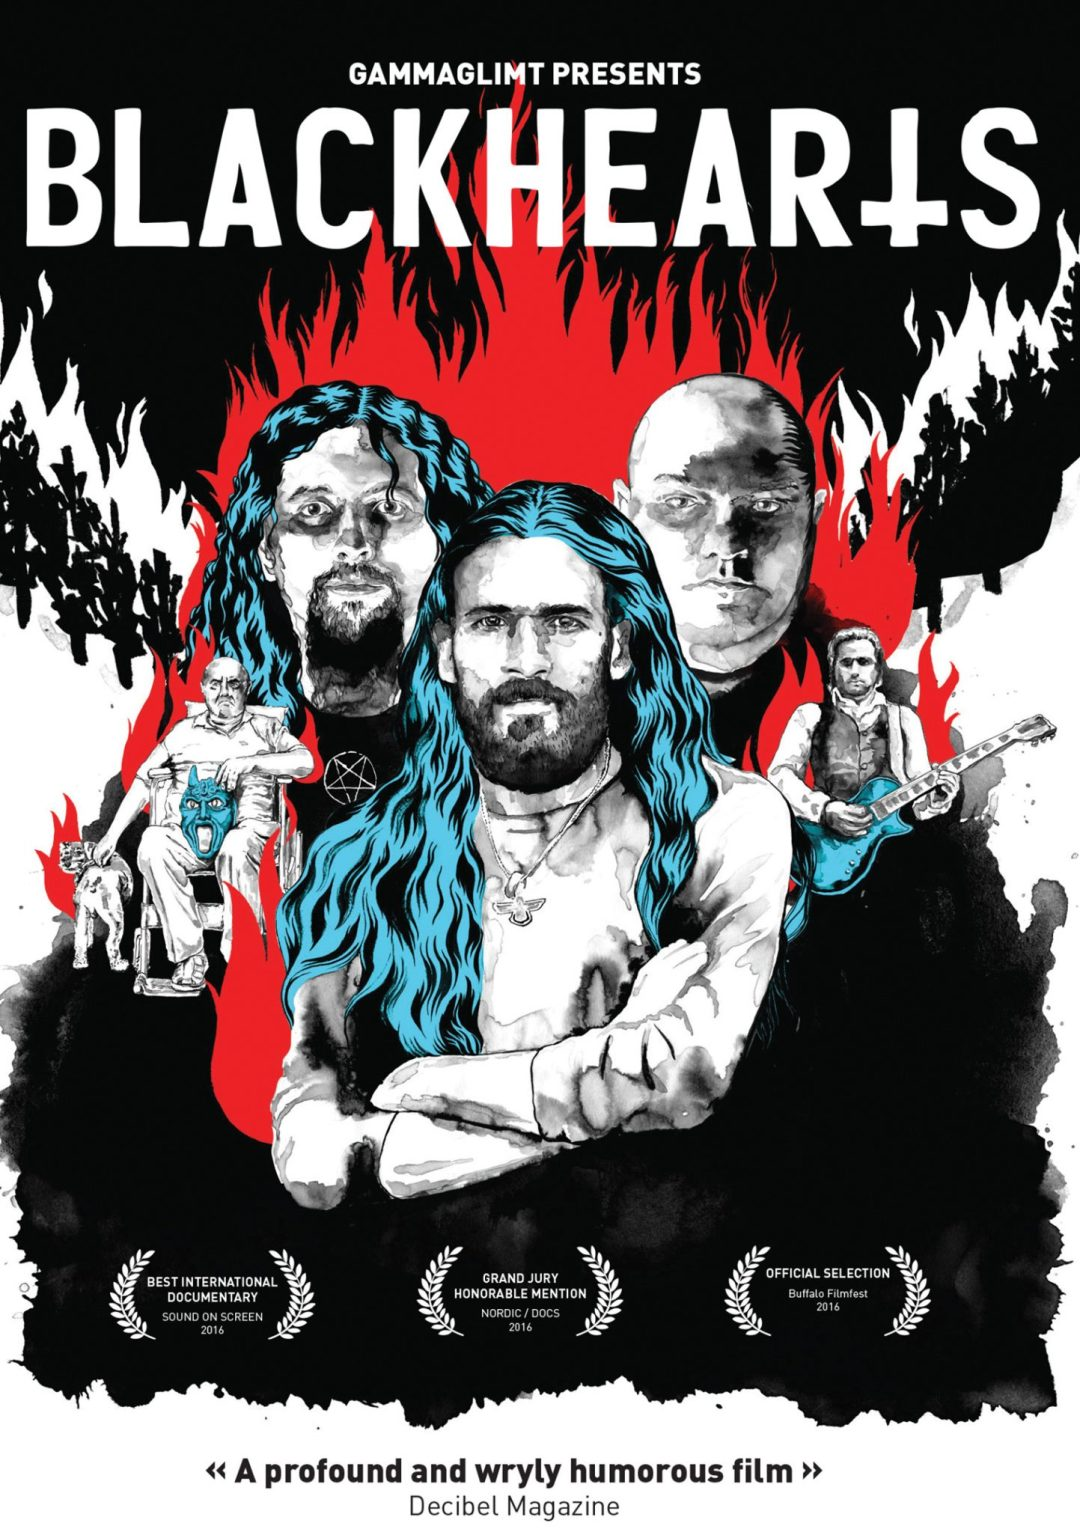 'Blackhearts' Coming to DVD, Digital, and VOD on April 11th